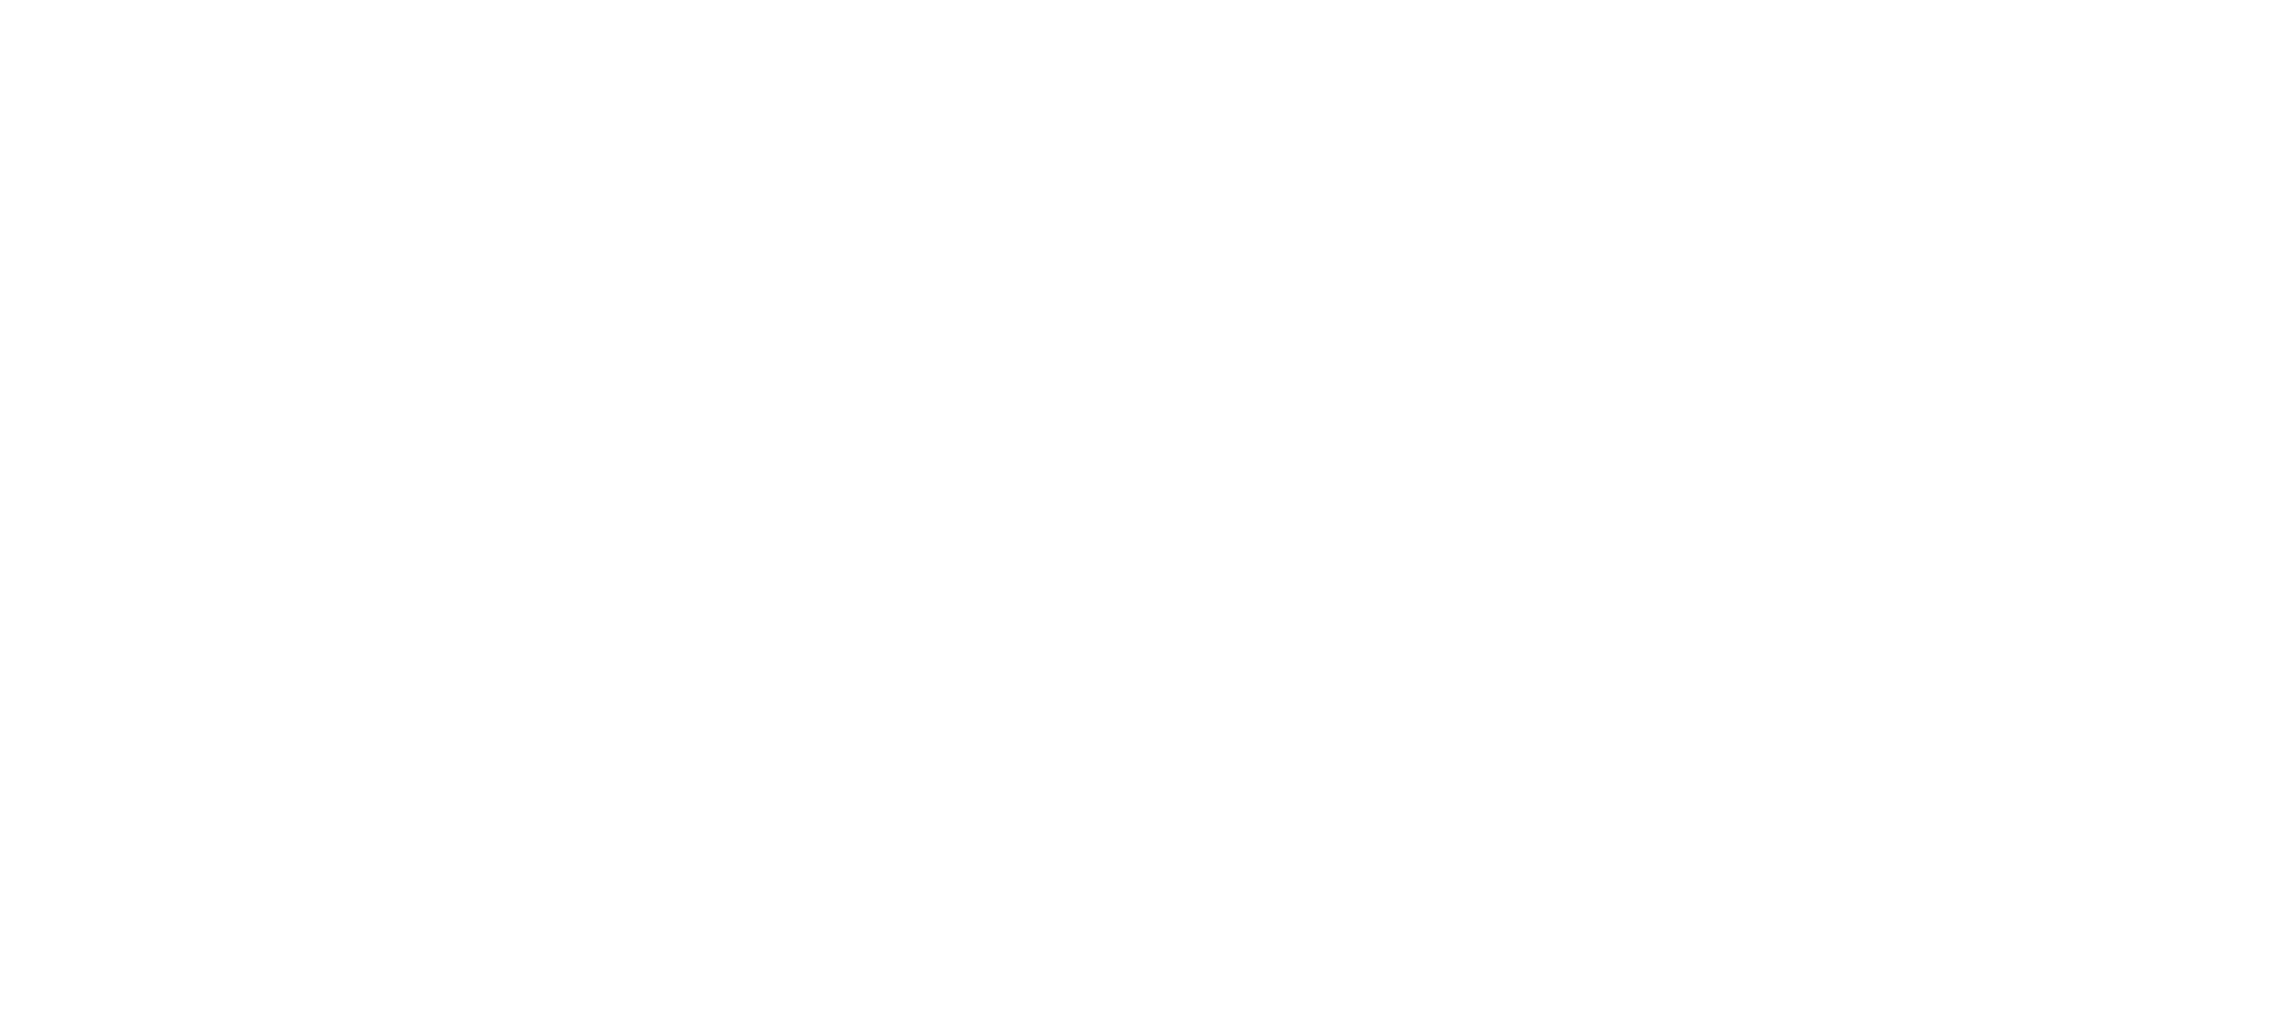 easysubs_2019_rgb_inverted